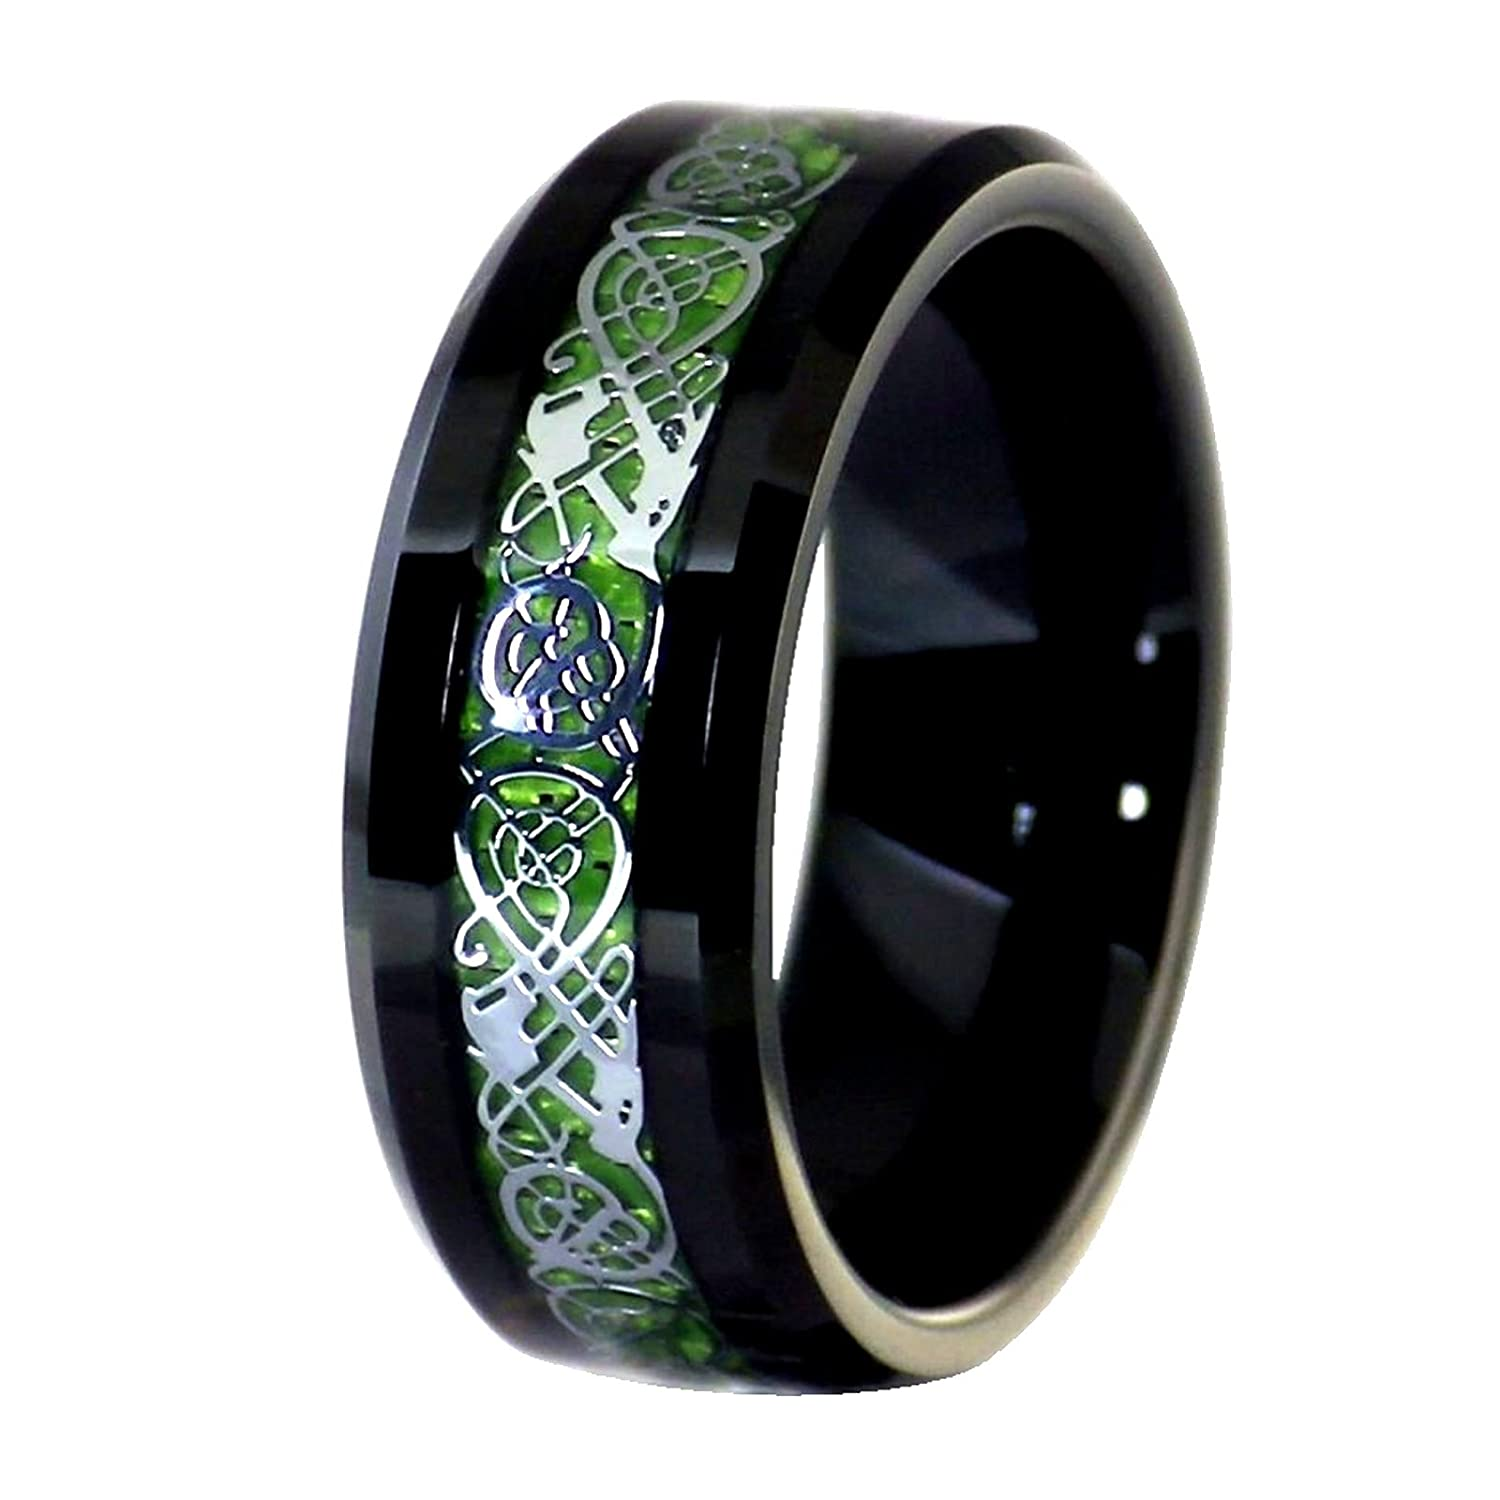 Unisex Black Tungsten Carbide 8mm Silver Tone Celtic Dragon Ring Green Carbon Fiber Wedding Band Size 6-17